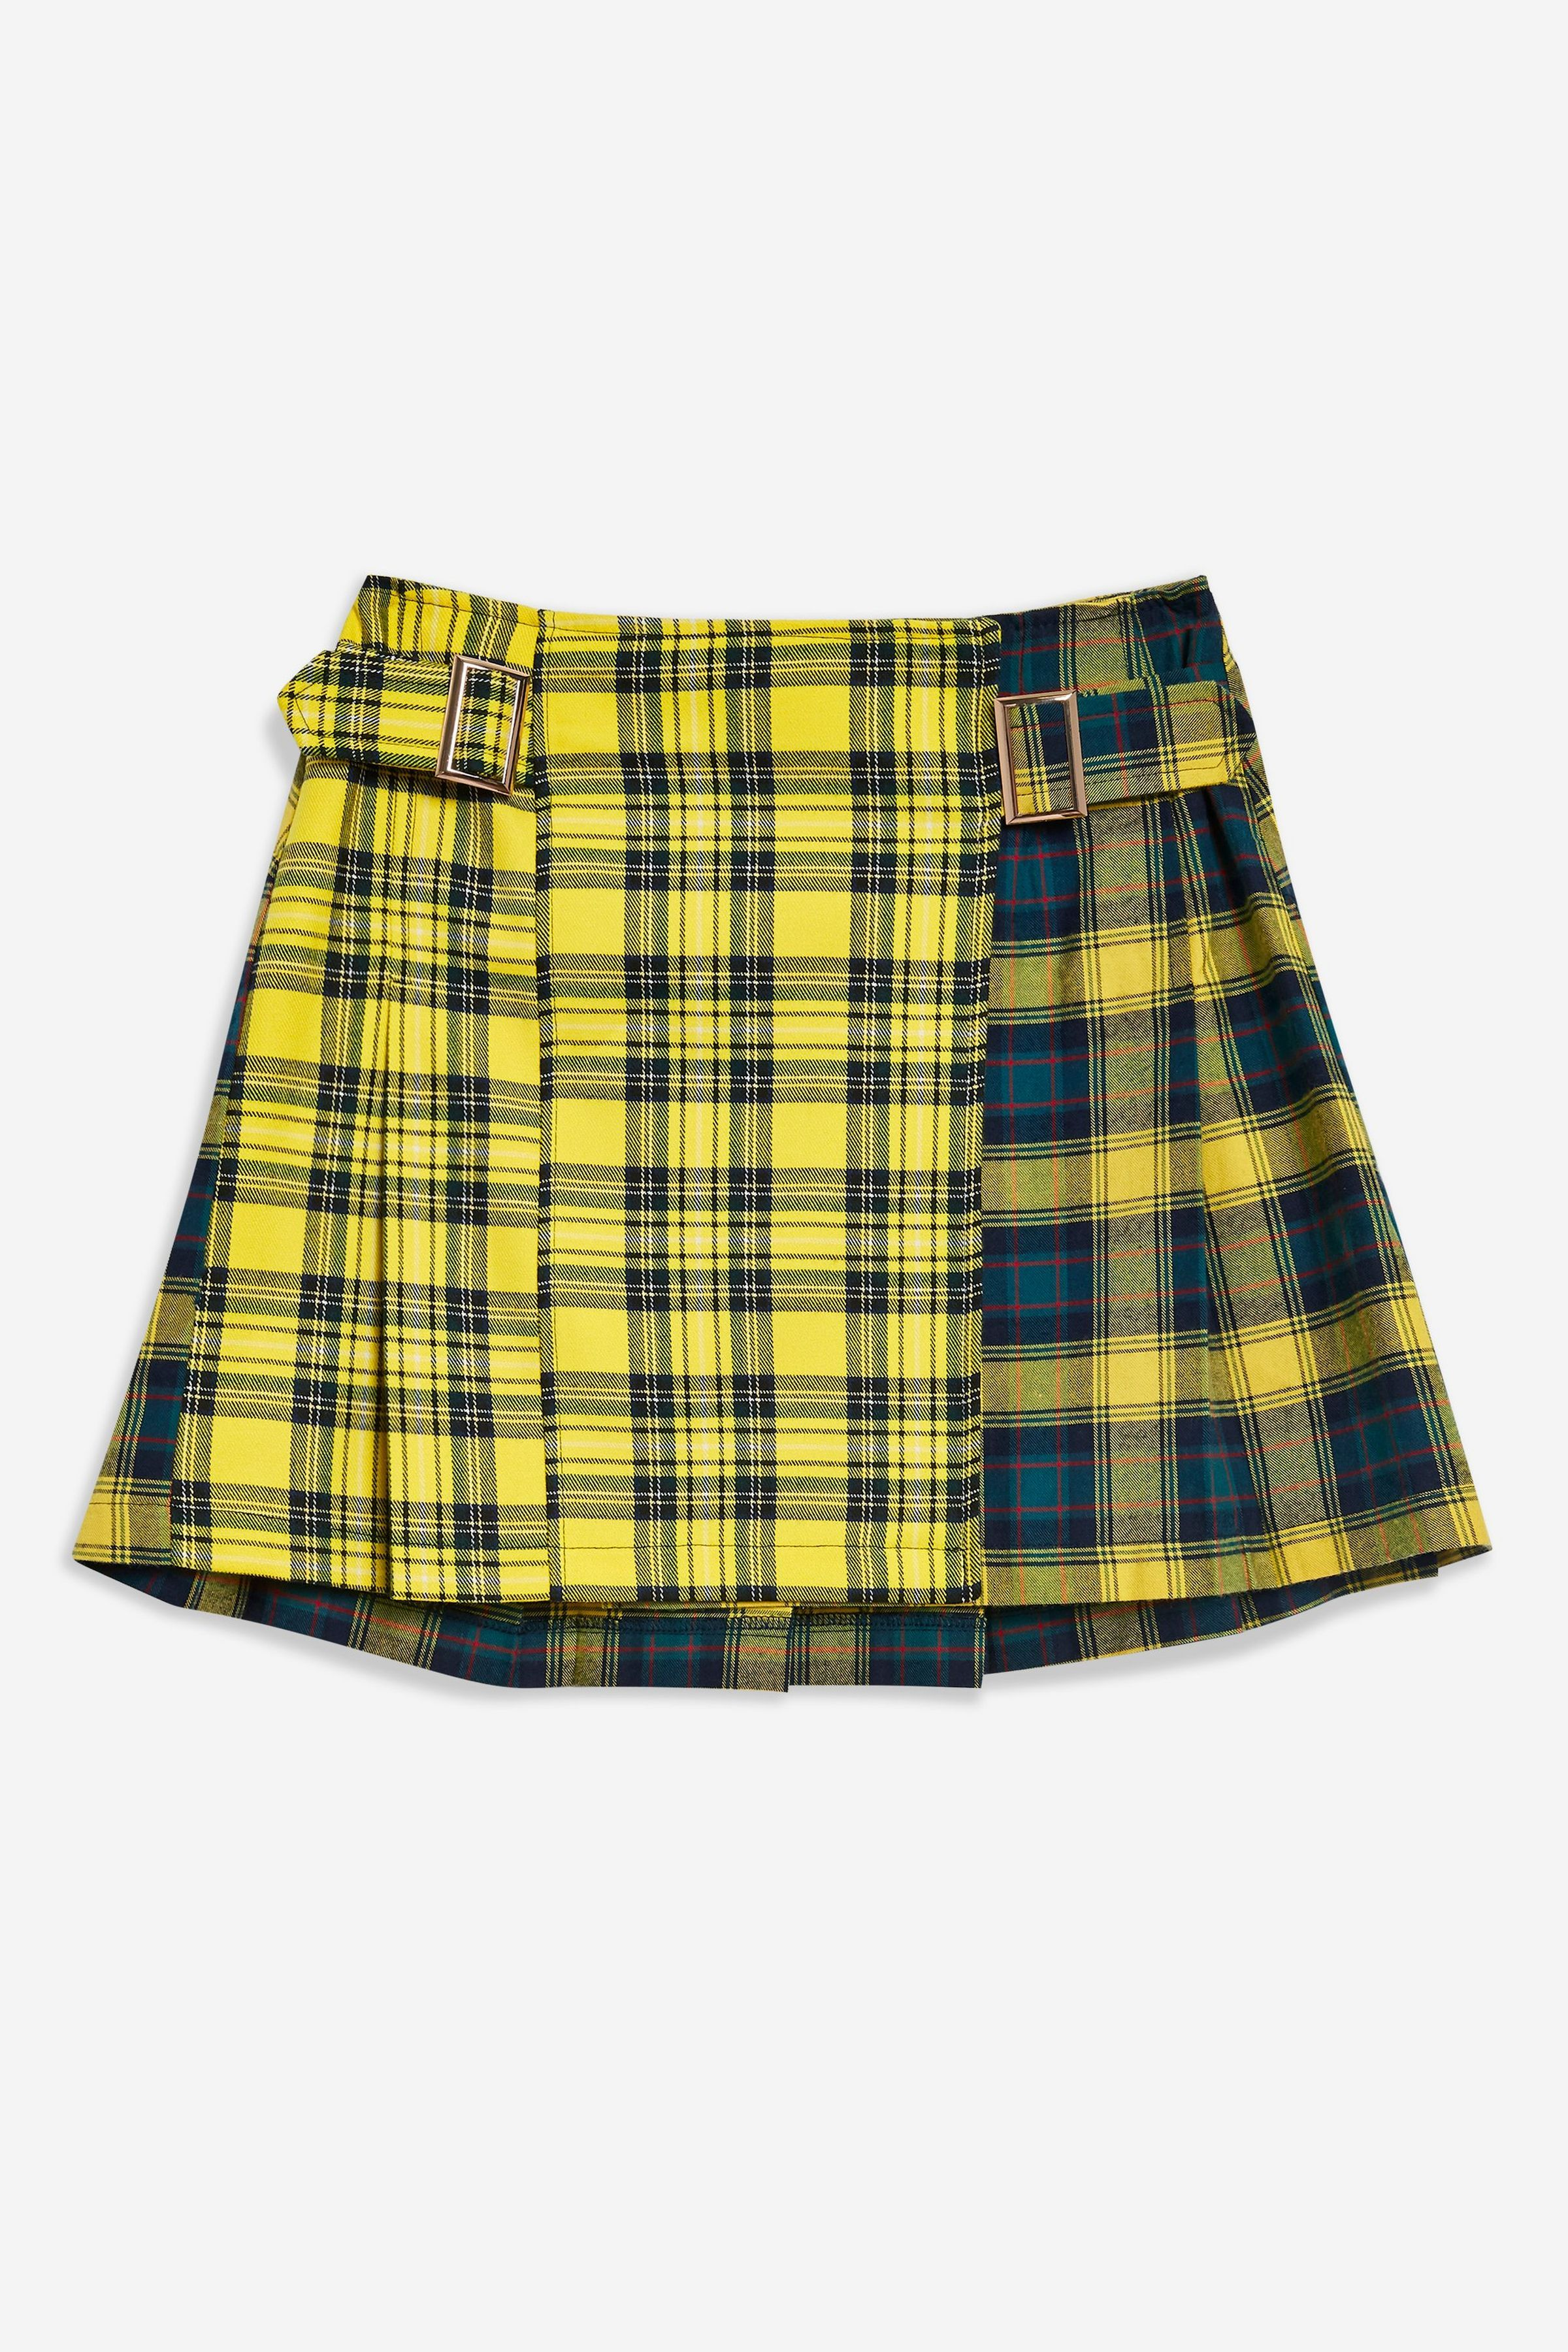 e7b00773c84 PETITE Mix Check Buckle Kilt Mini Skirt